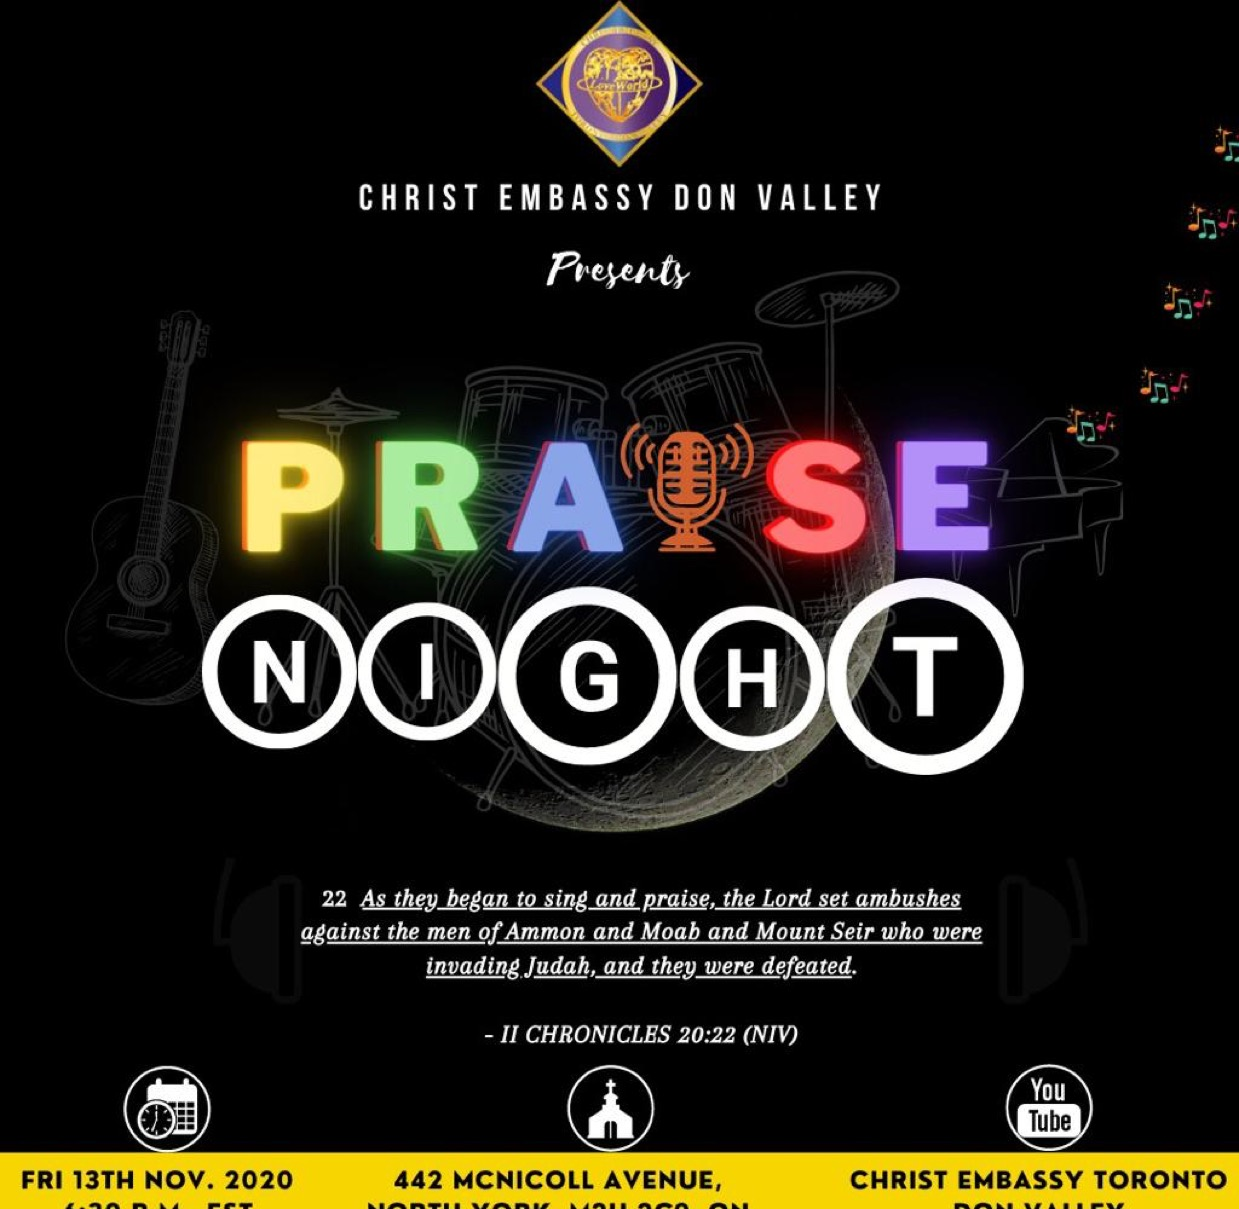 Experience the power of Praise,